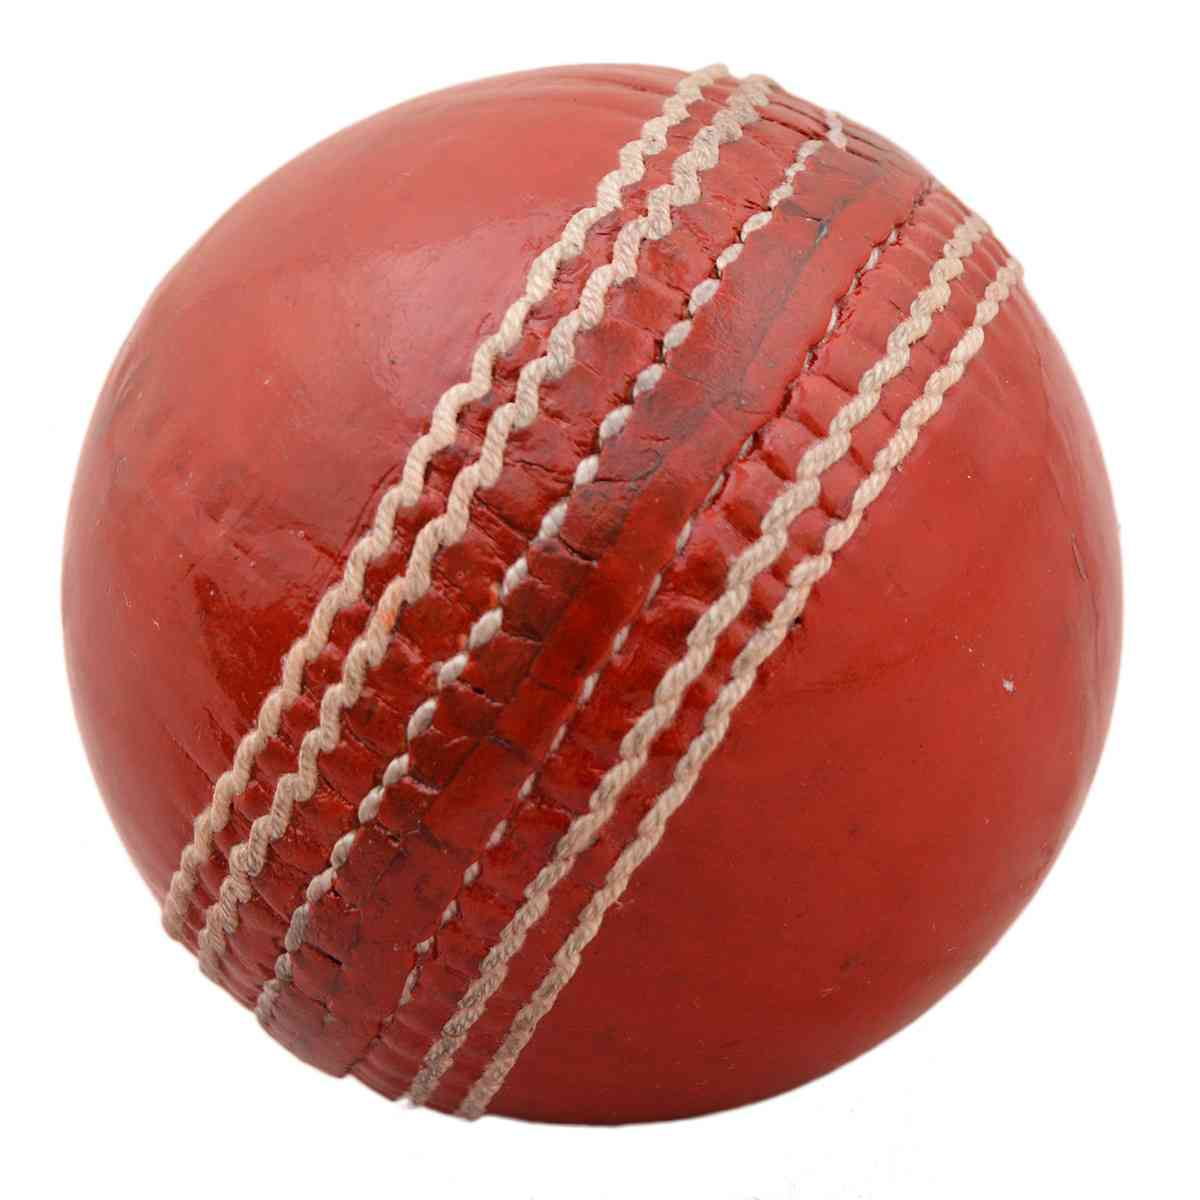 Sajjad Ball Maker High Quality Hard Ball (156g Corkball) - Red